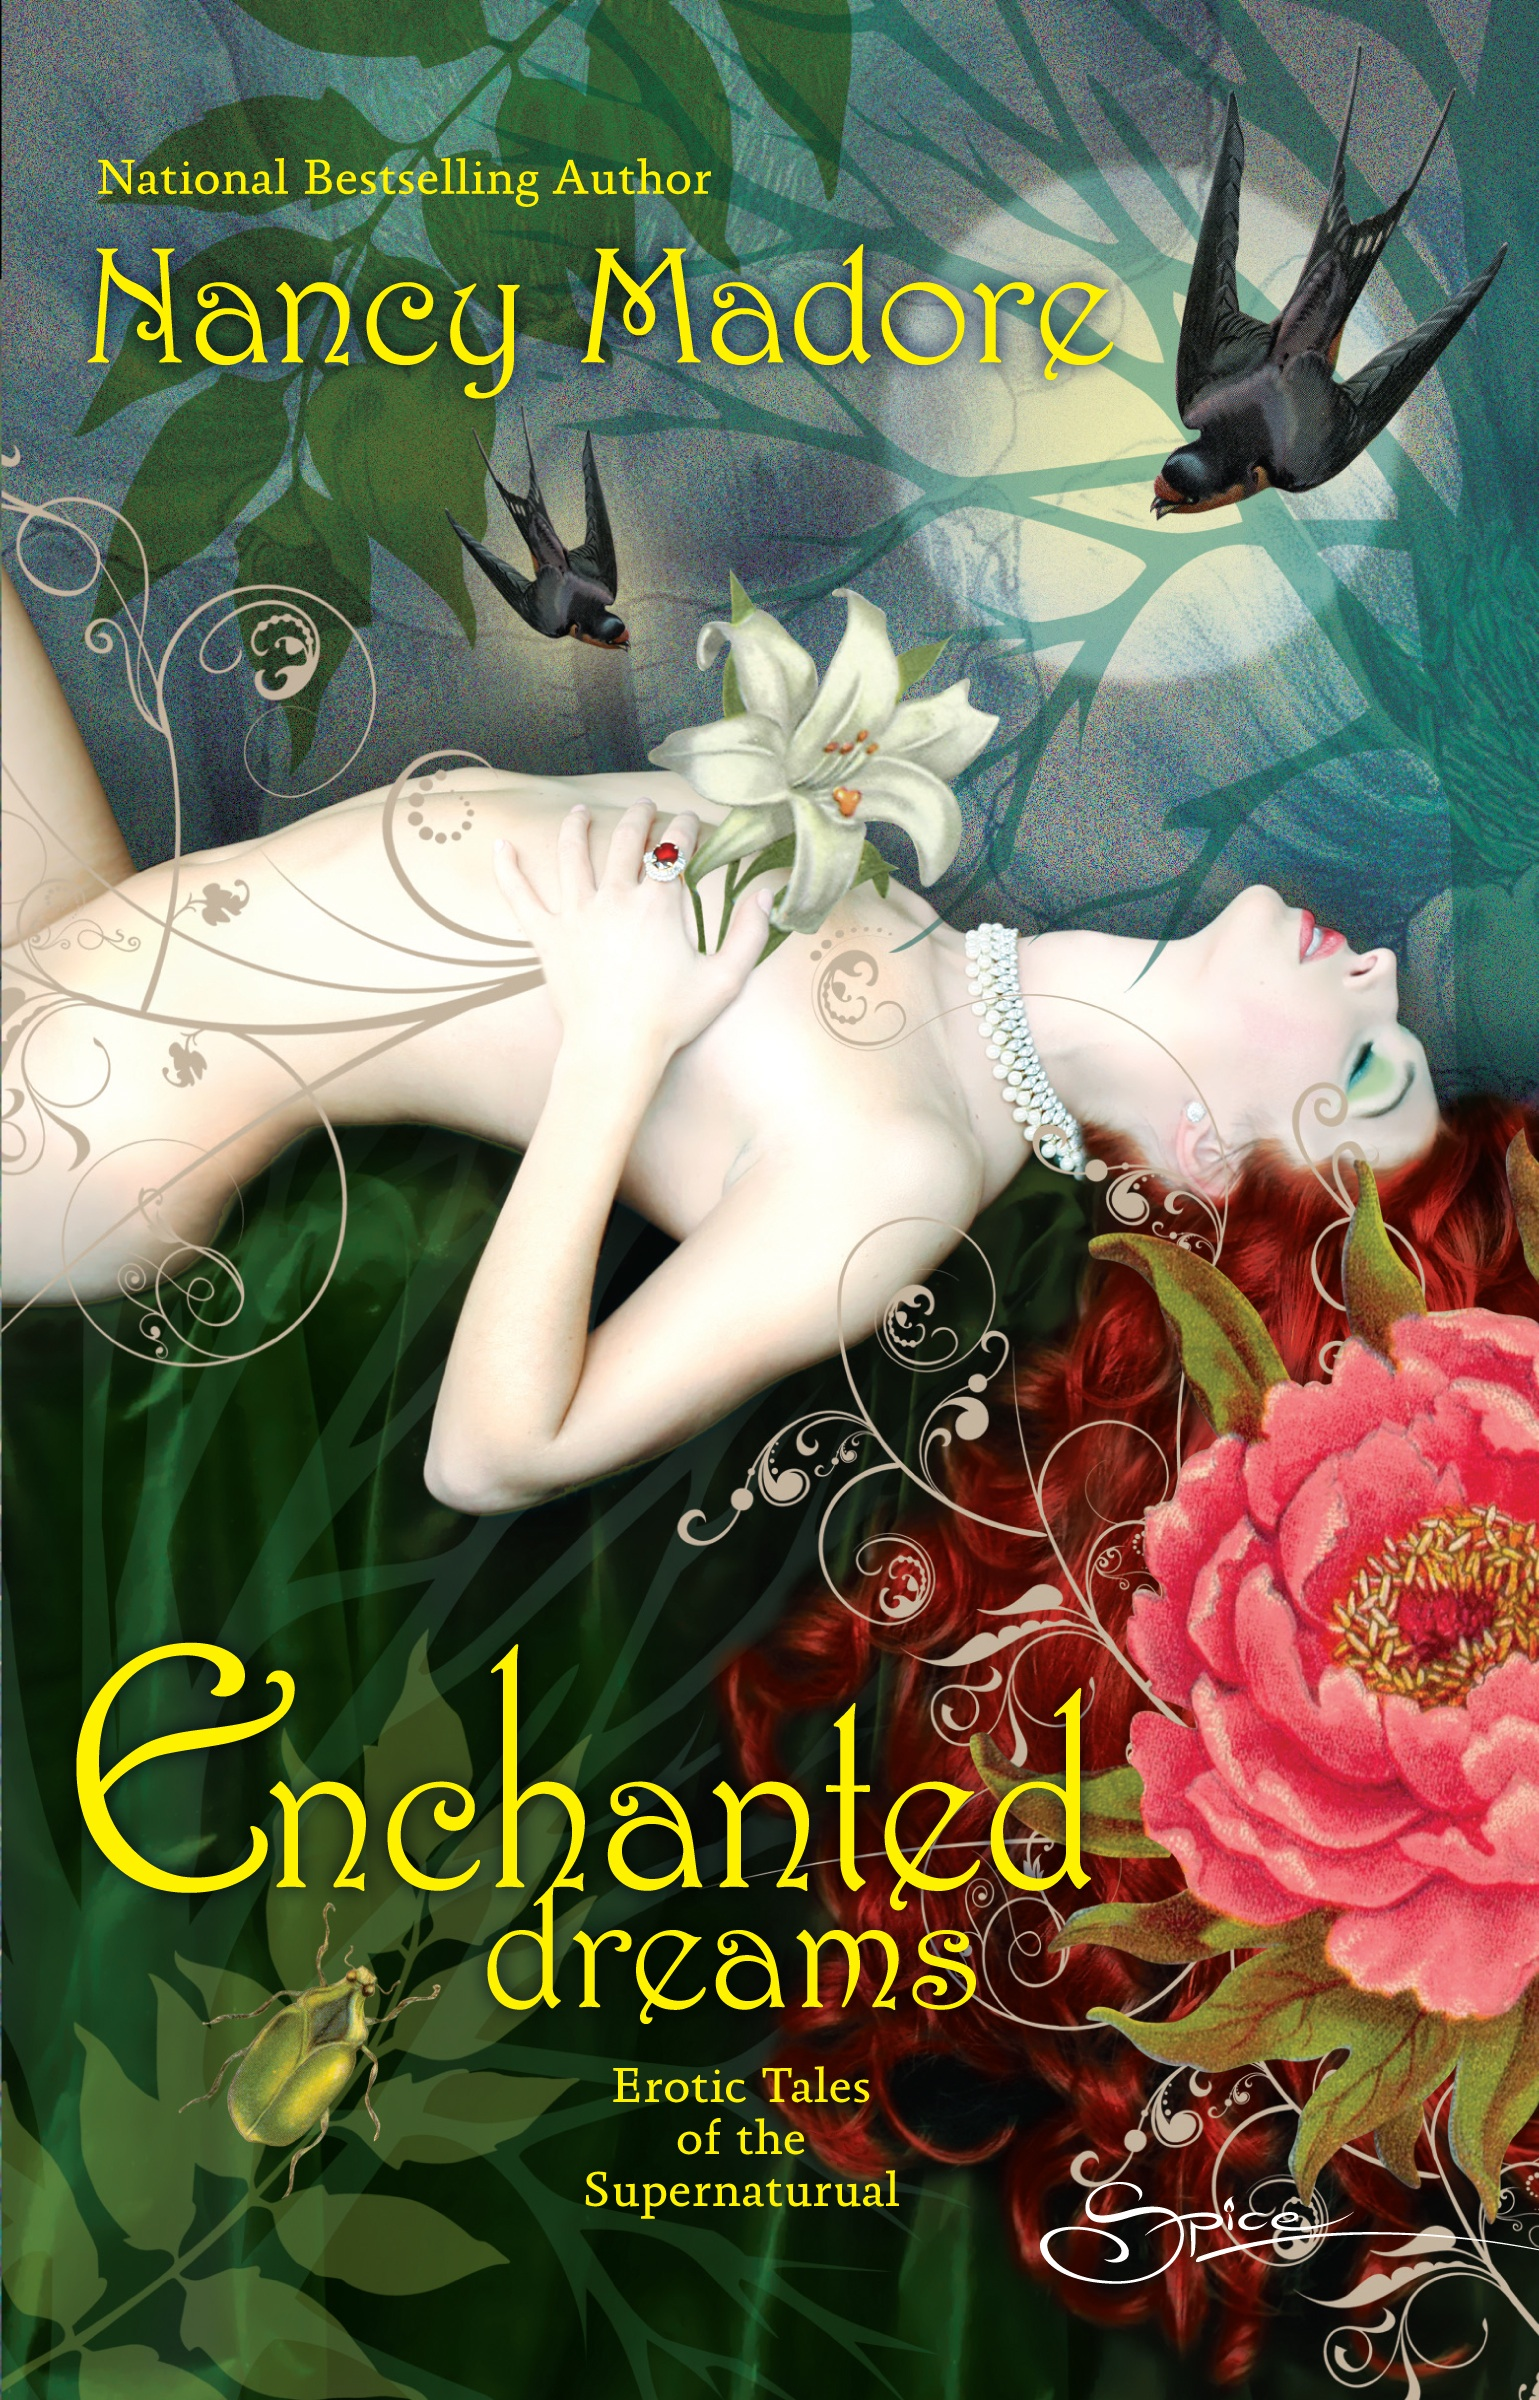 Enchanteddreams